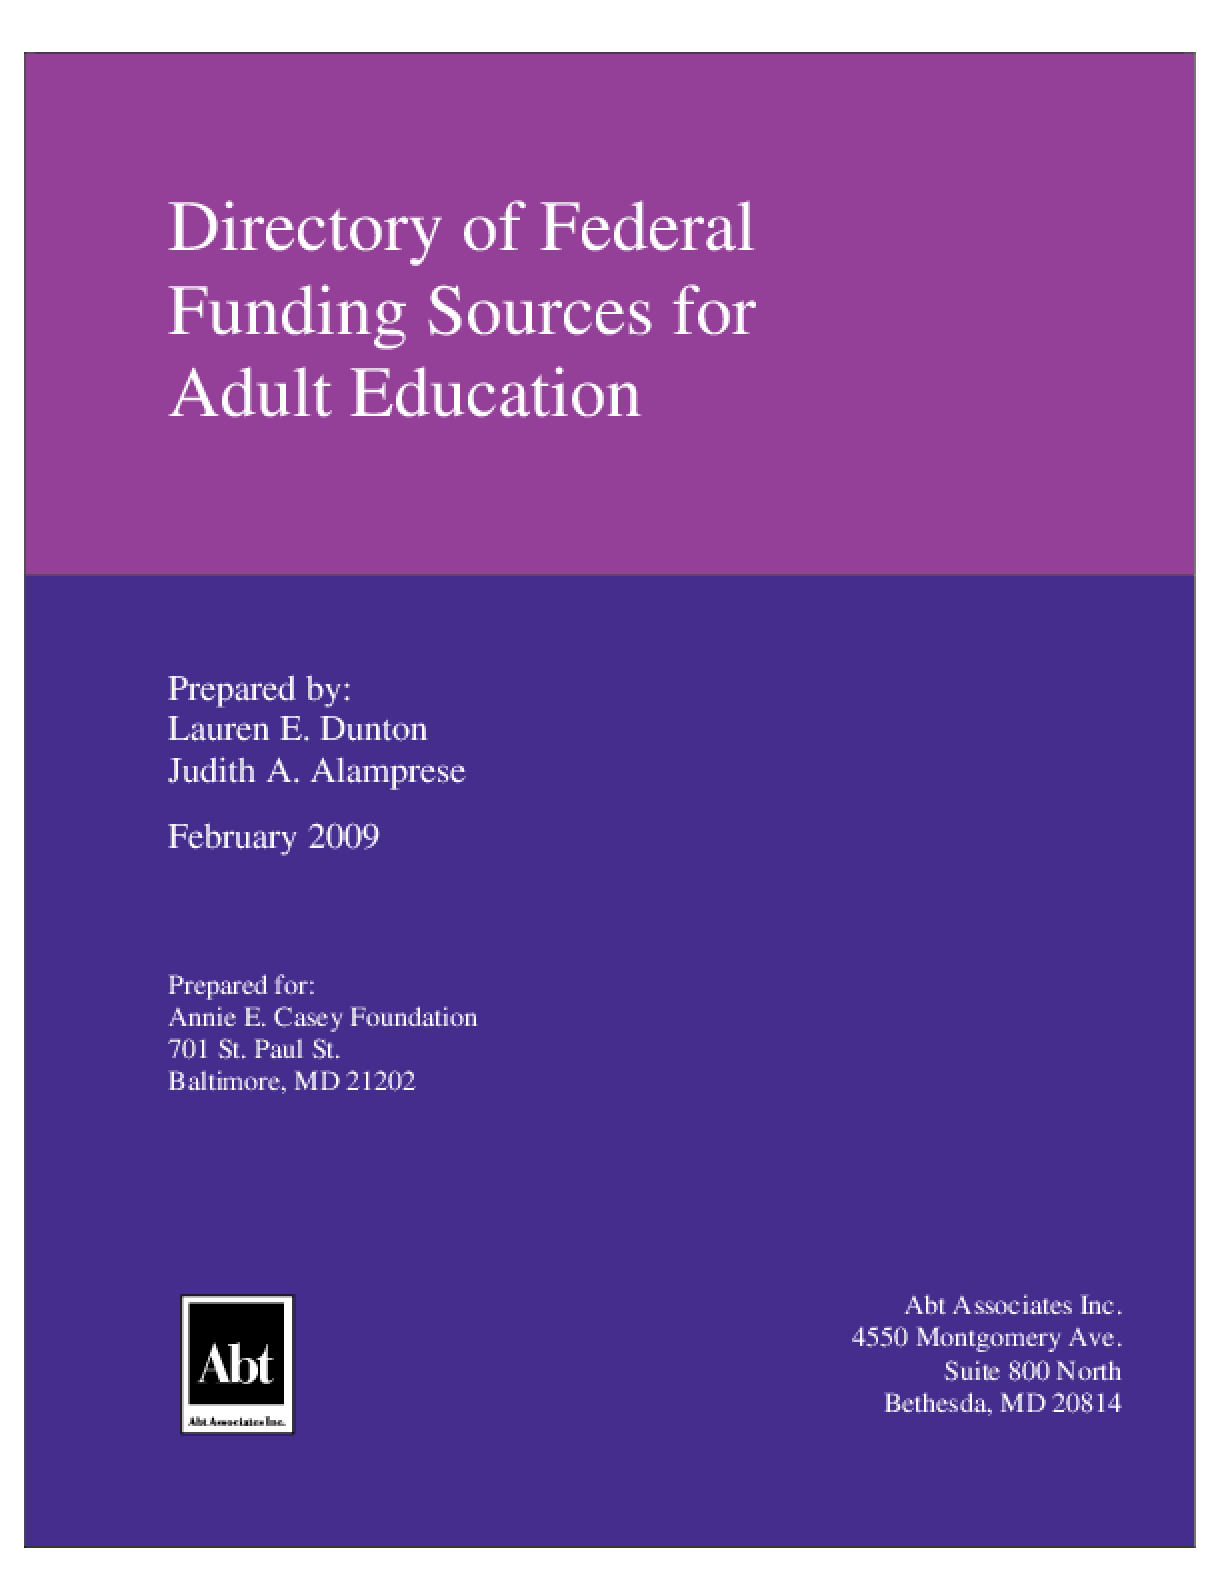 Directory of Federal Funding Sources for Adult Education